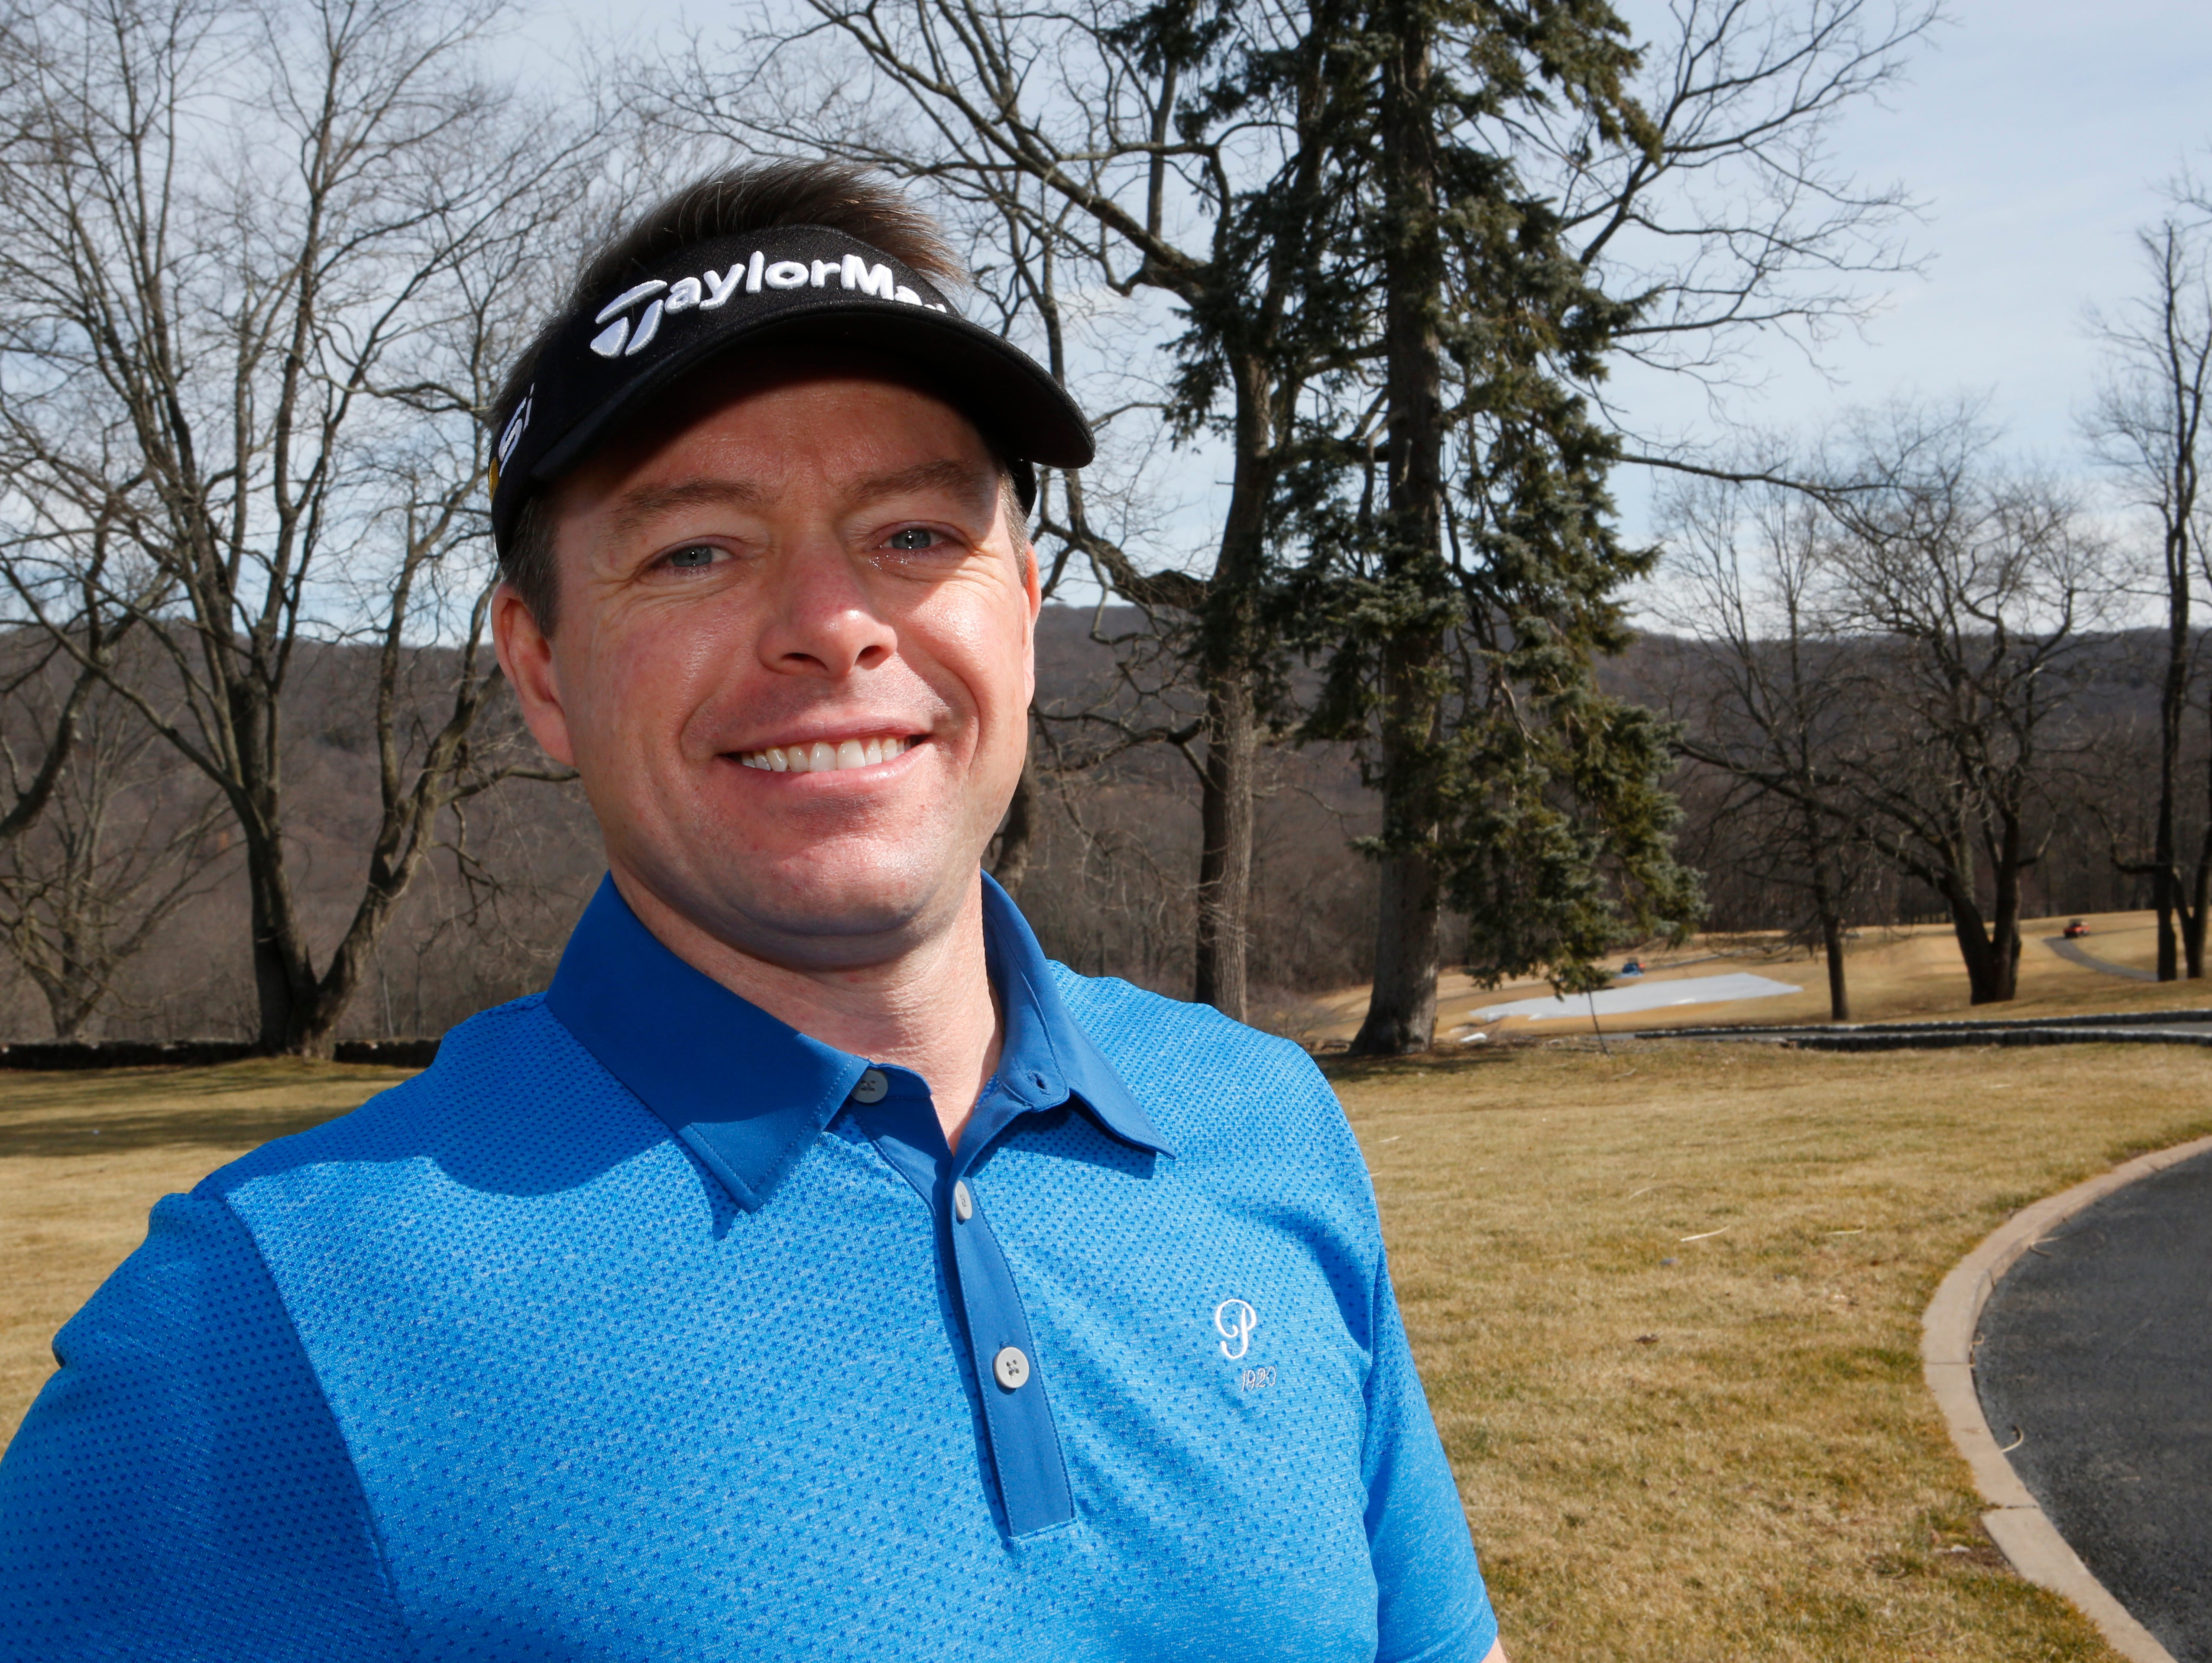 Steve Scott won medalist honors Tuesday at the Old Westbury local qualifier for the U.S. Open.